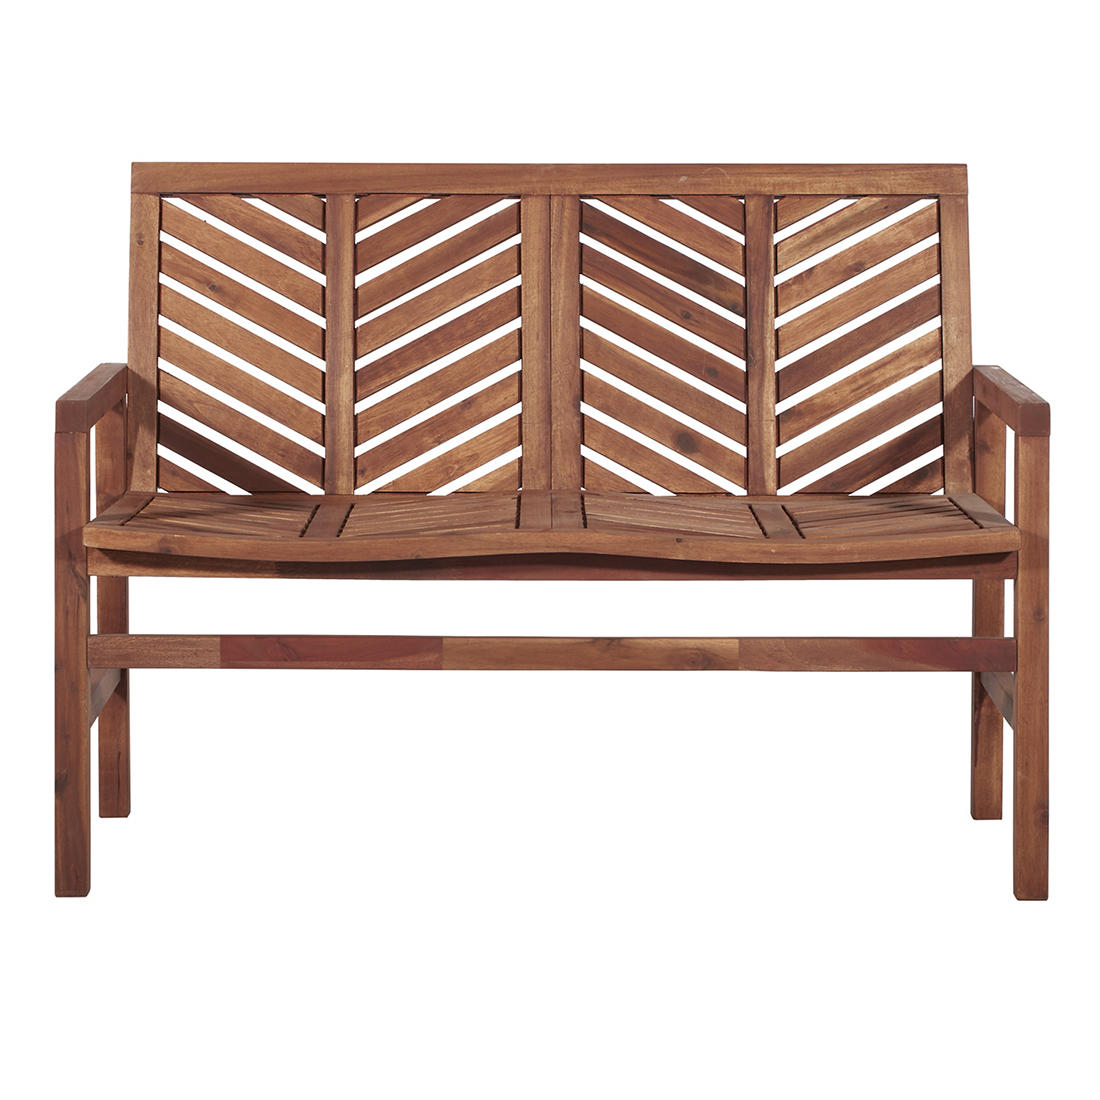 Enjoyable W Trends Outdoor Acacia Wood Love Seat Natural Bjs Pdpeps Interior Chair Design Pdpepsorg